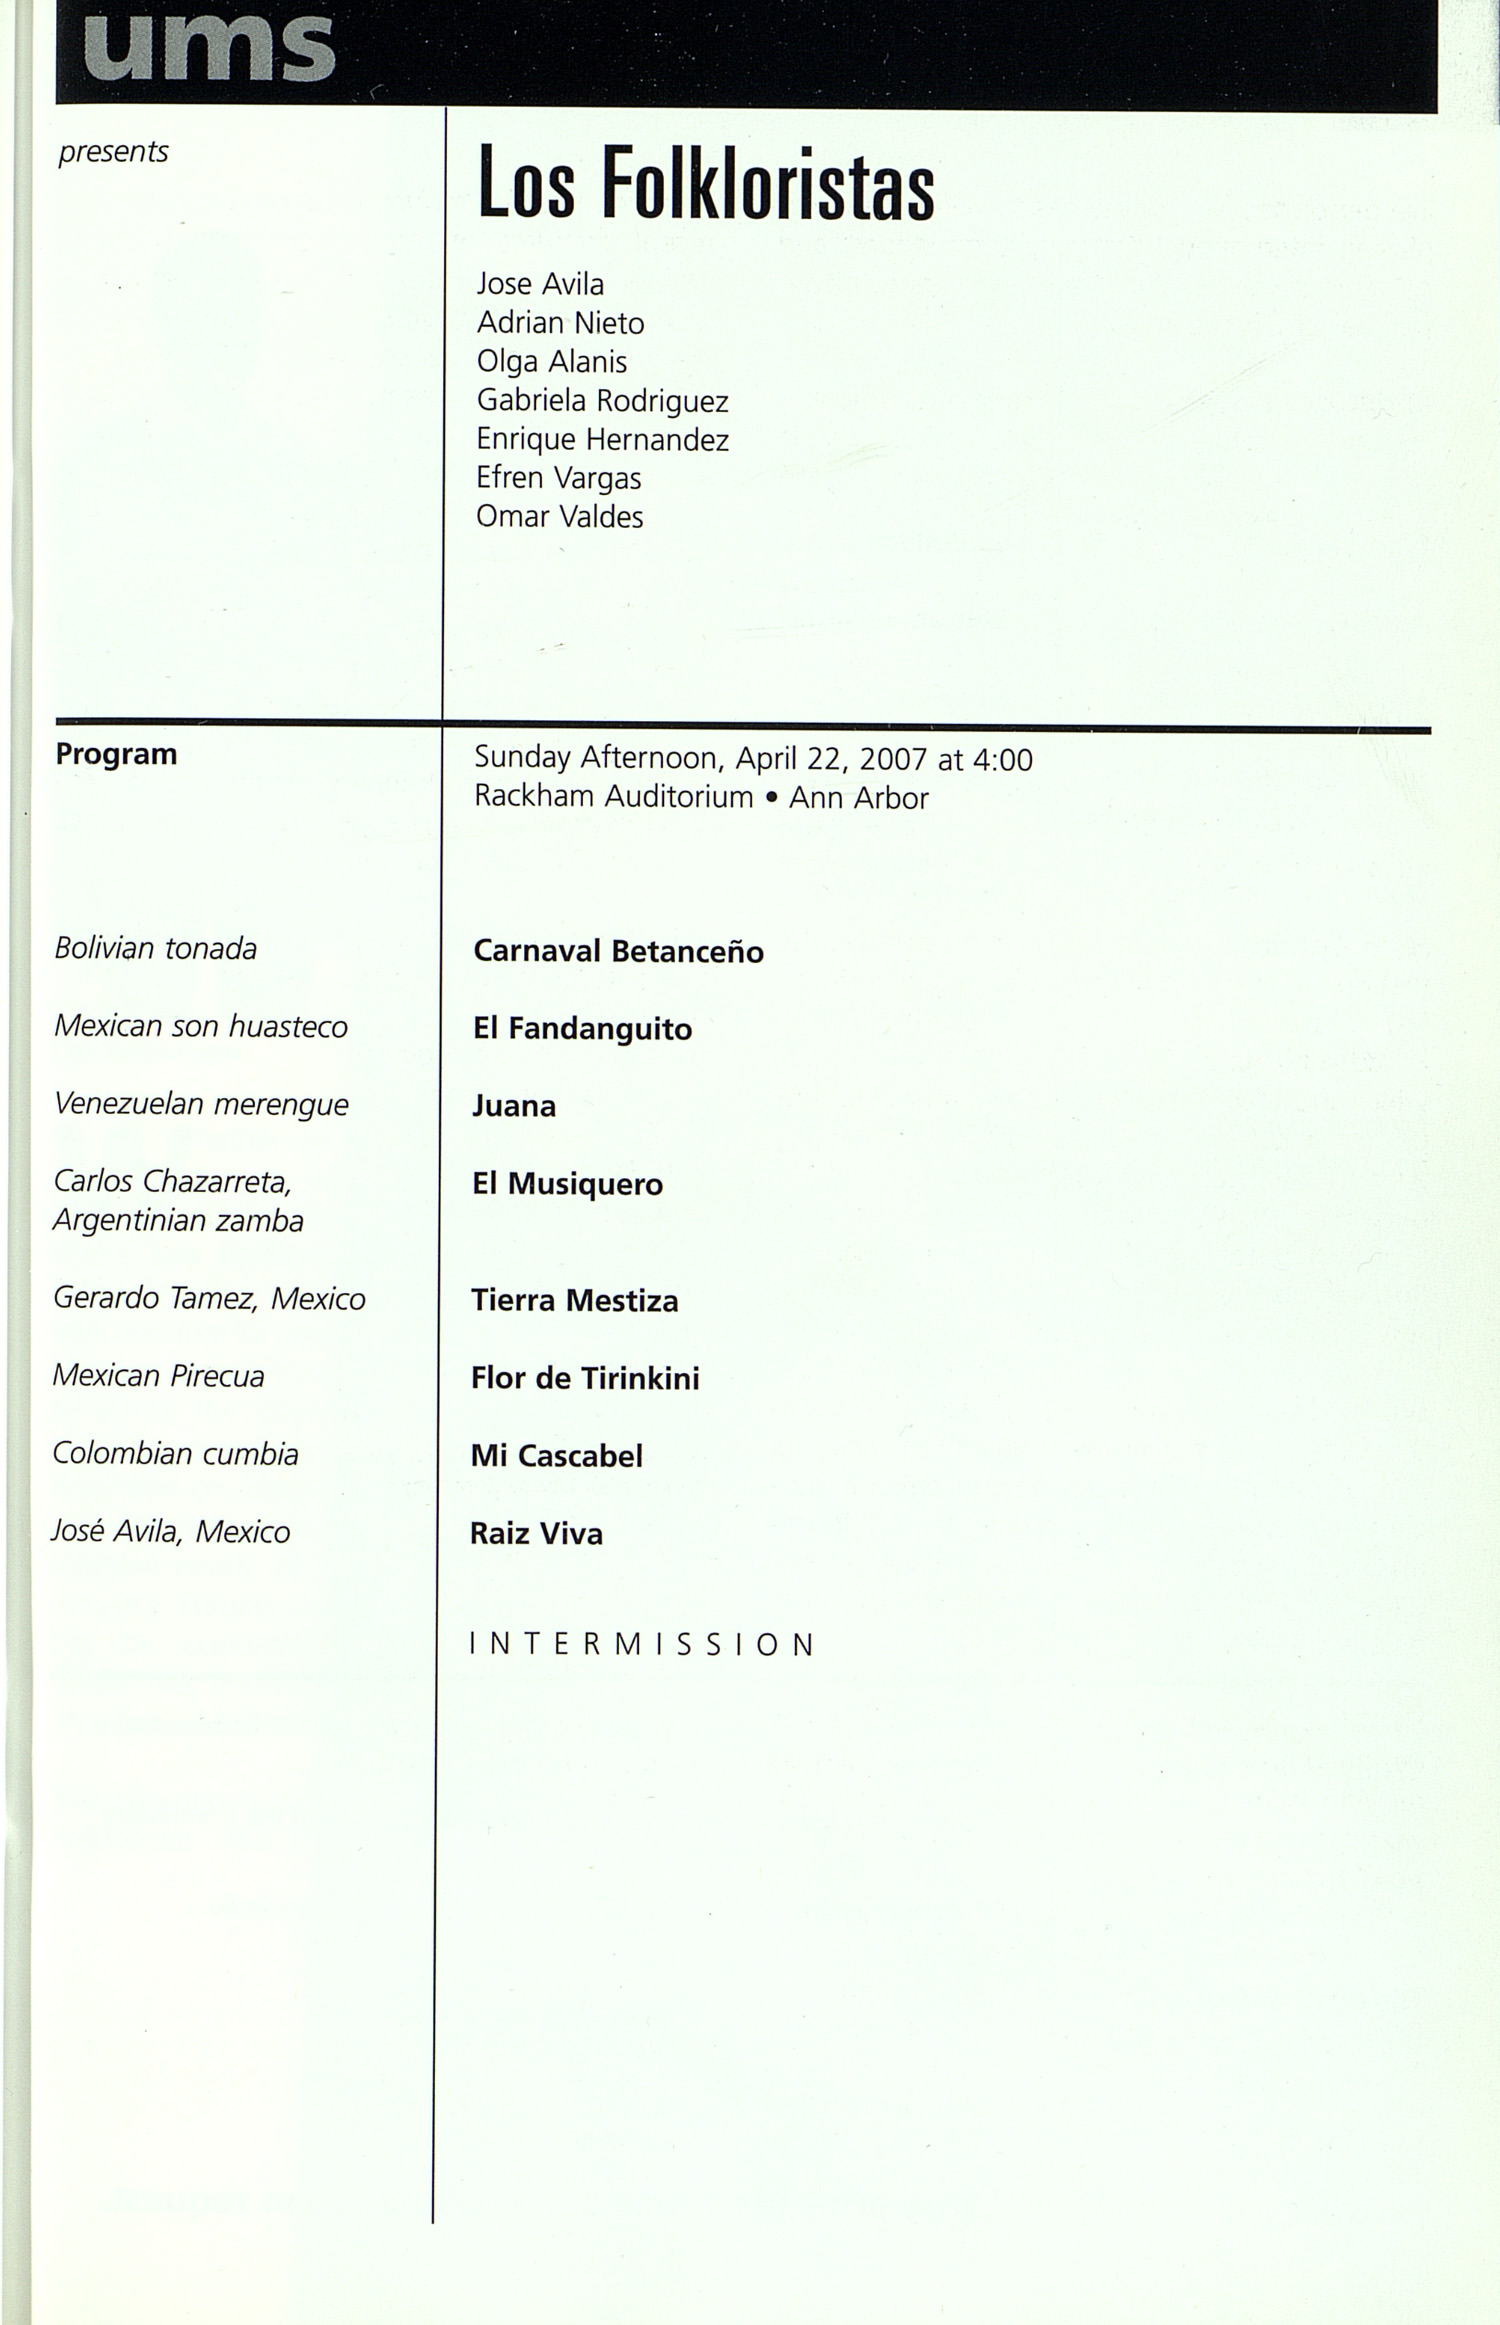 UMS Concert Program, Friday Apr. 13 To 22: University Musical Society: Winter 2007 - Friday Apr. 13 To 22 --  image